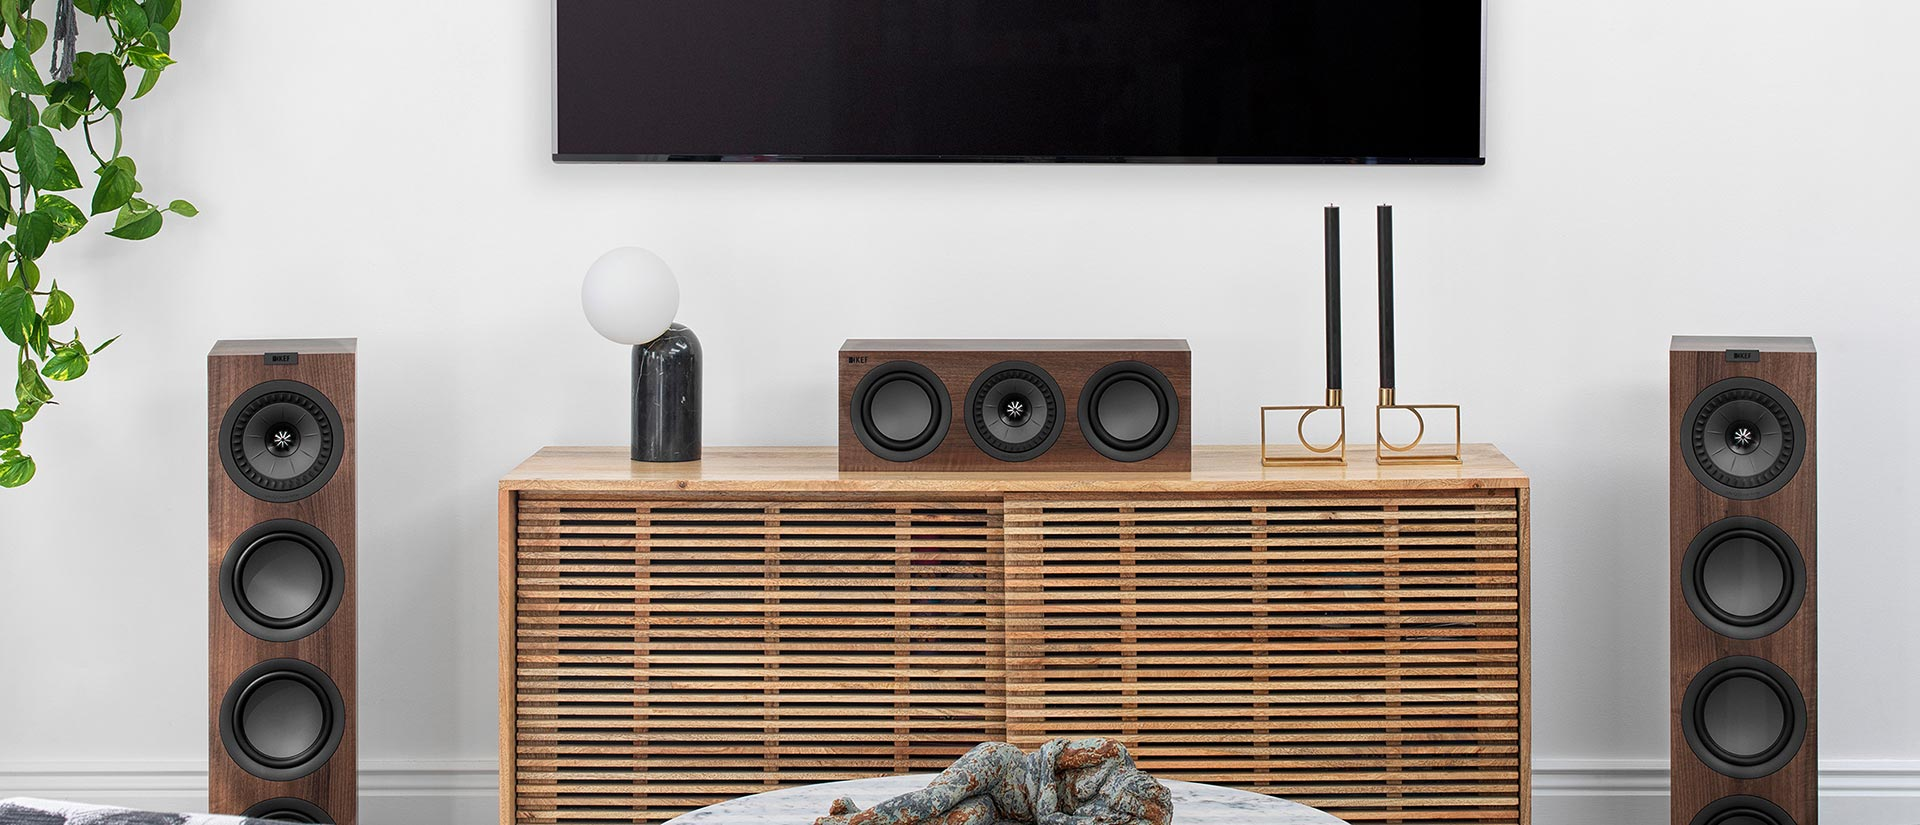 KEF Q Series packs significant technical improvements over the previous generation.